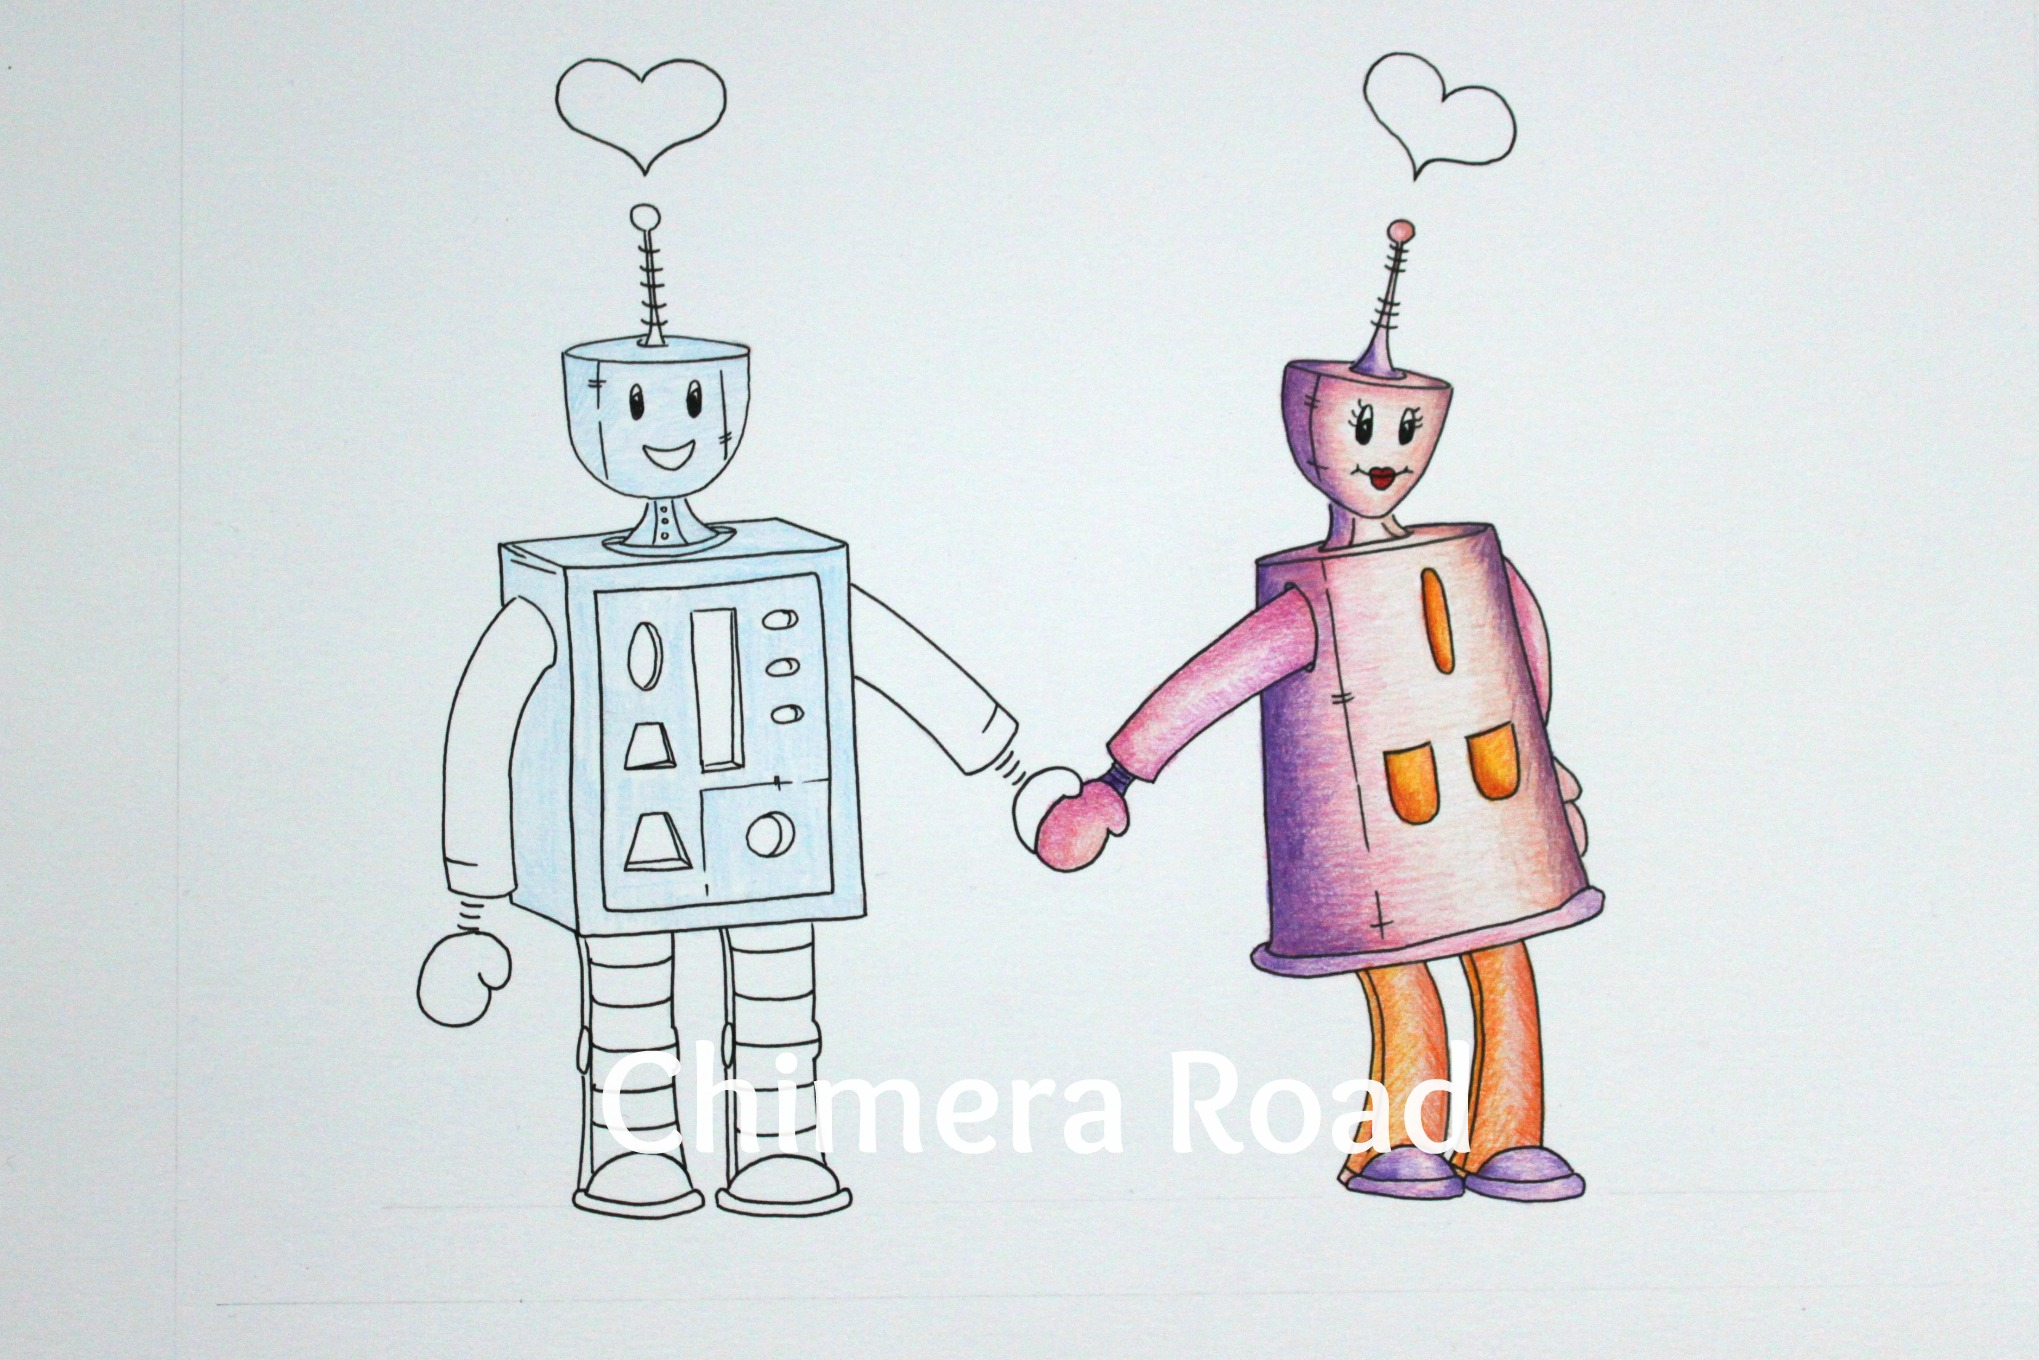 WIP Robots in Love| Dakota Midnyght Art (dakotamidnyght.com)